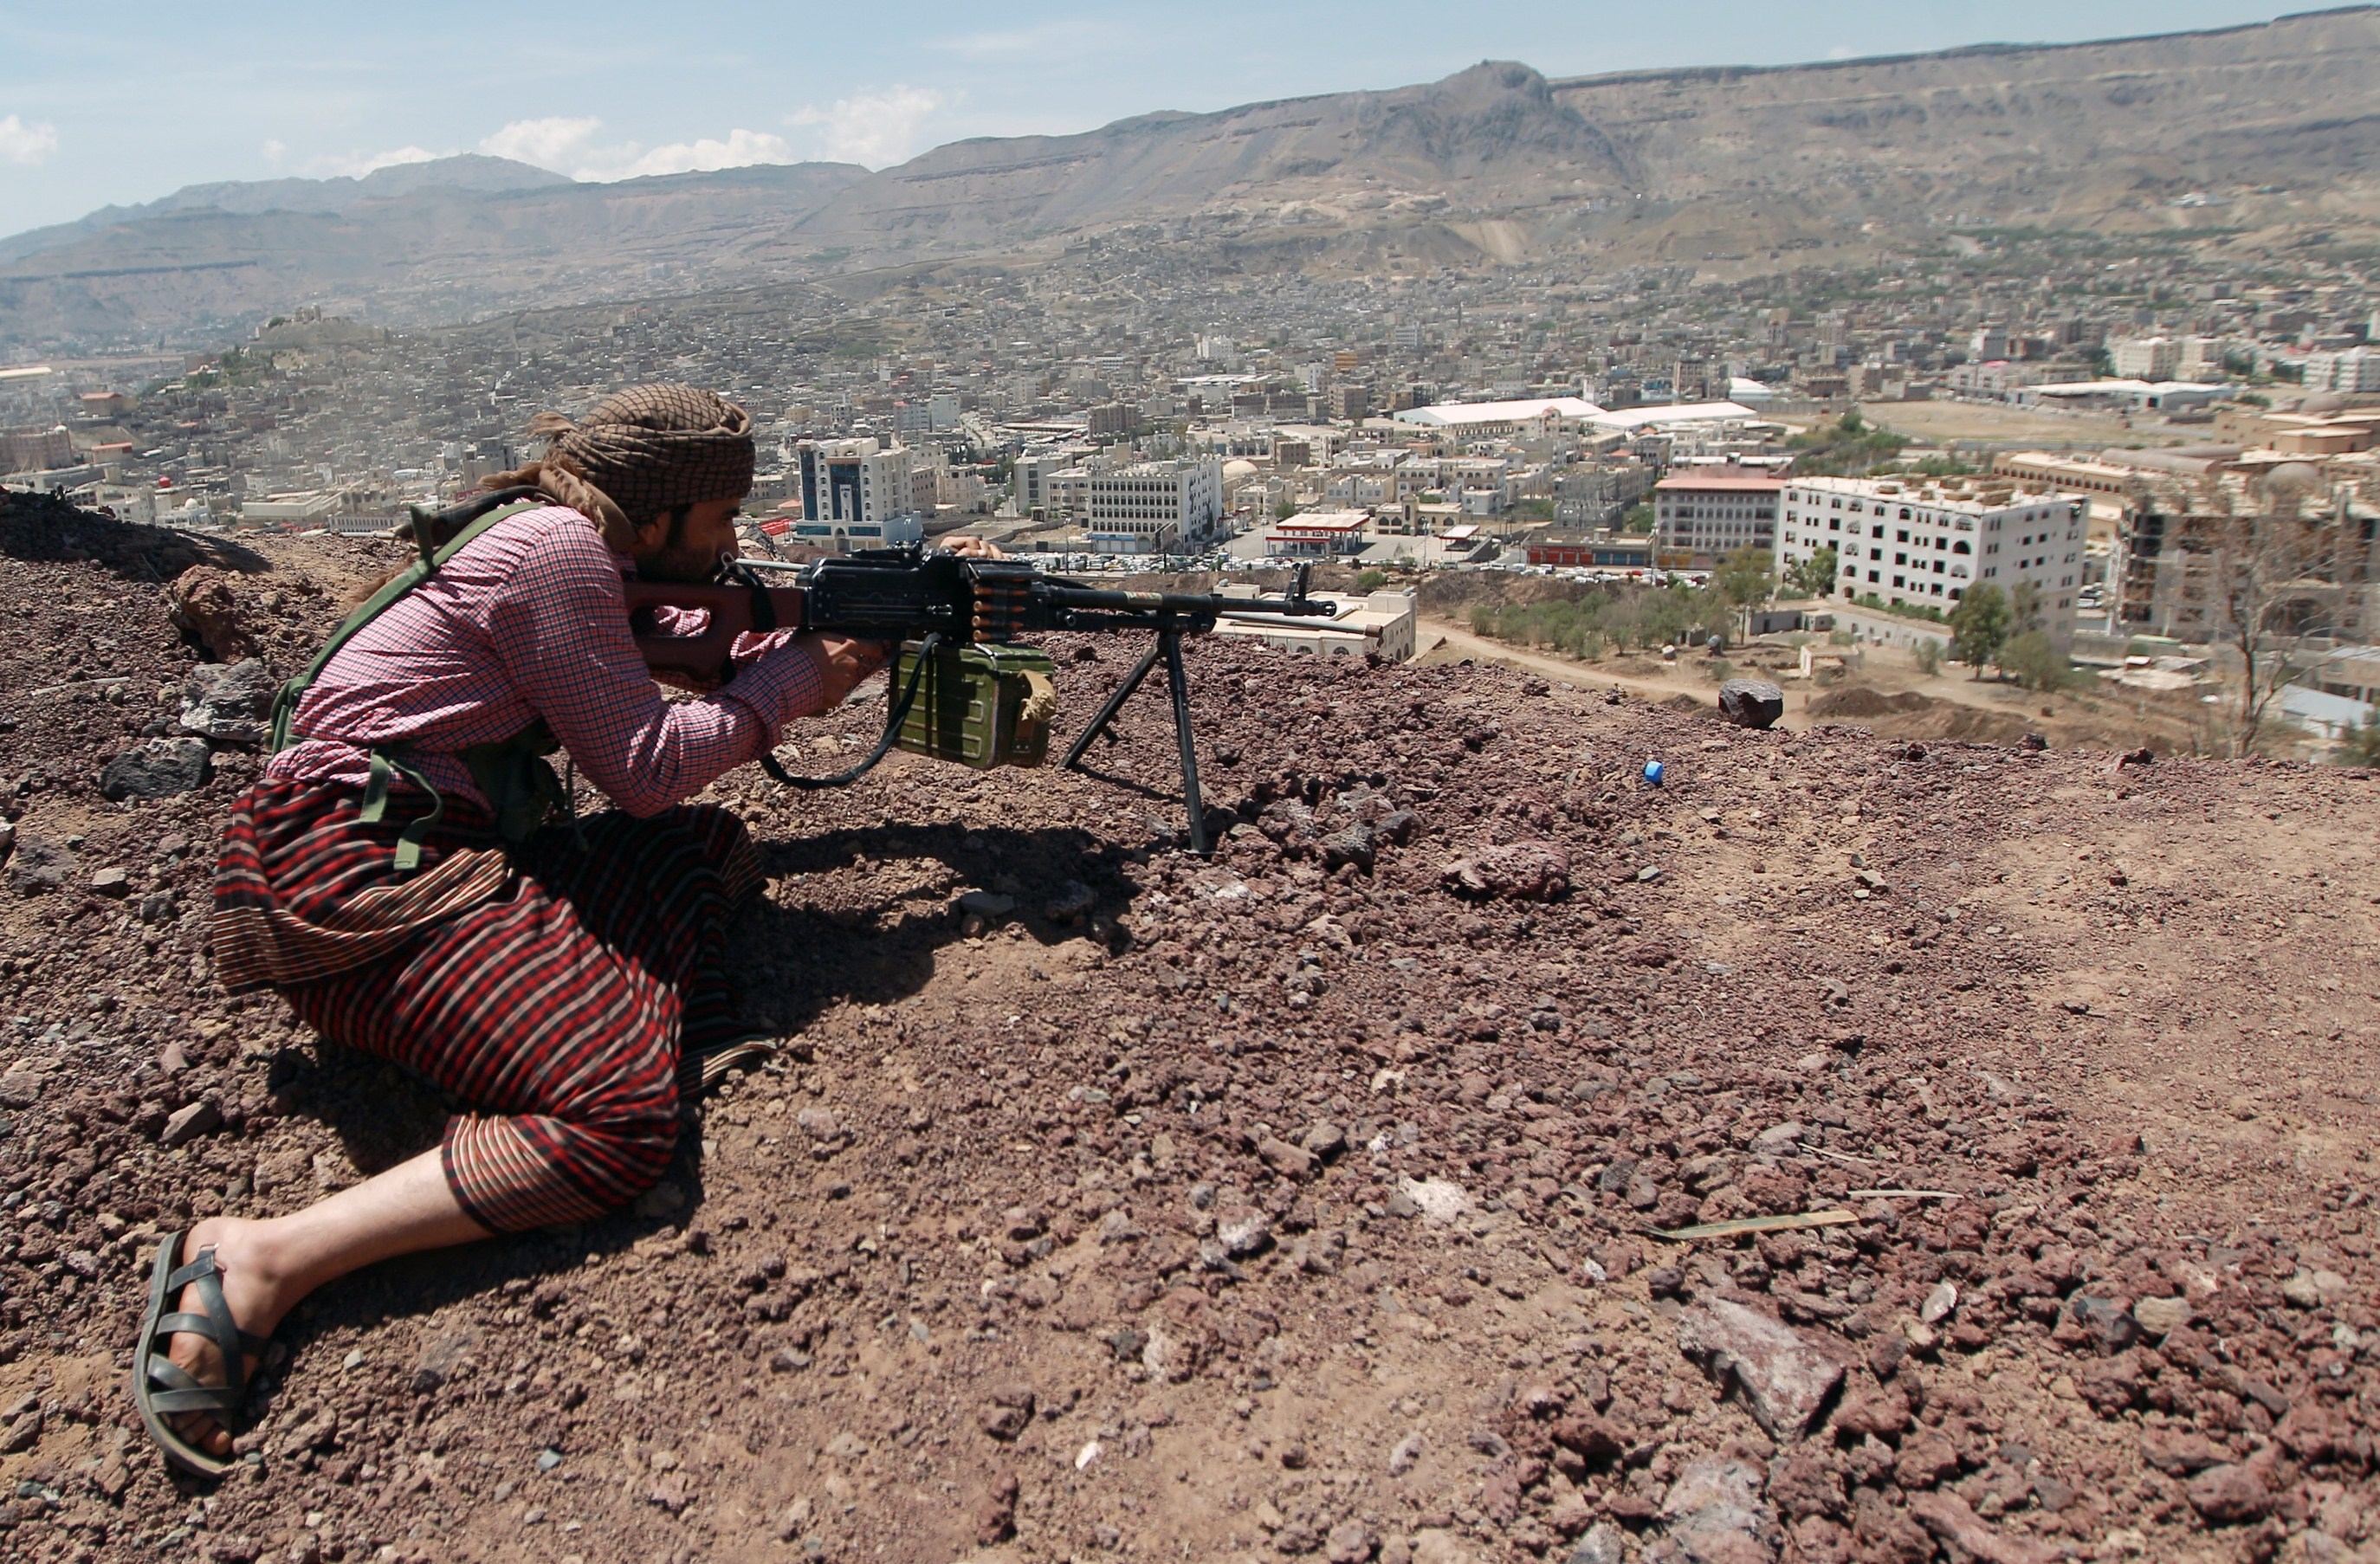 A Yemeni Shiite Huthi anti-government rebel holds a position at an army base which they captured without resistance just hours before the signing a UN-brokered peace agreement on September 22, 2014 in the Yemeni capital, Sanaa. The hard-won deal, signed the day before by the president and all the main political parties, is intended to end a week of deadly fighting in Sanaa between the rebels and their opponents, and put the country's troubled transition back on track.